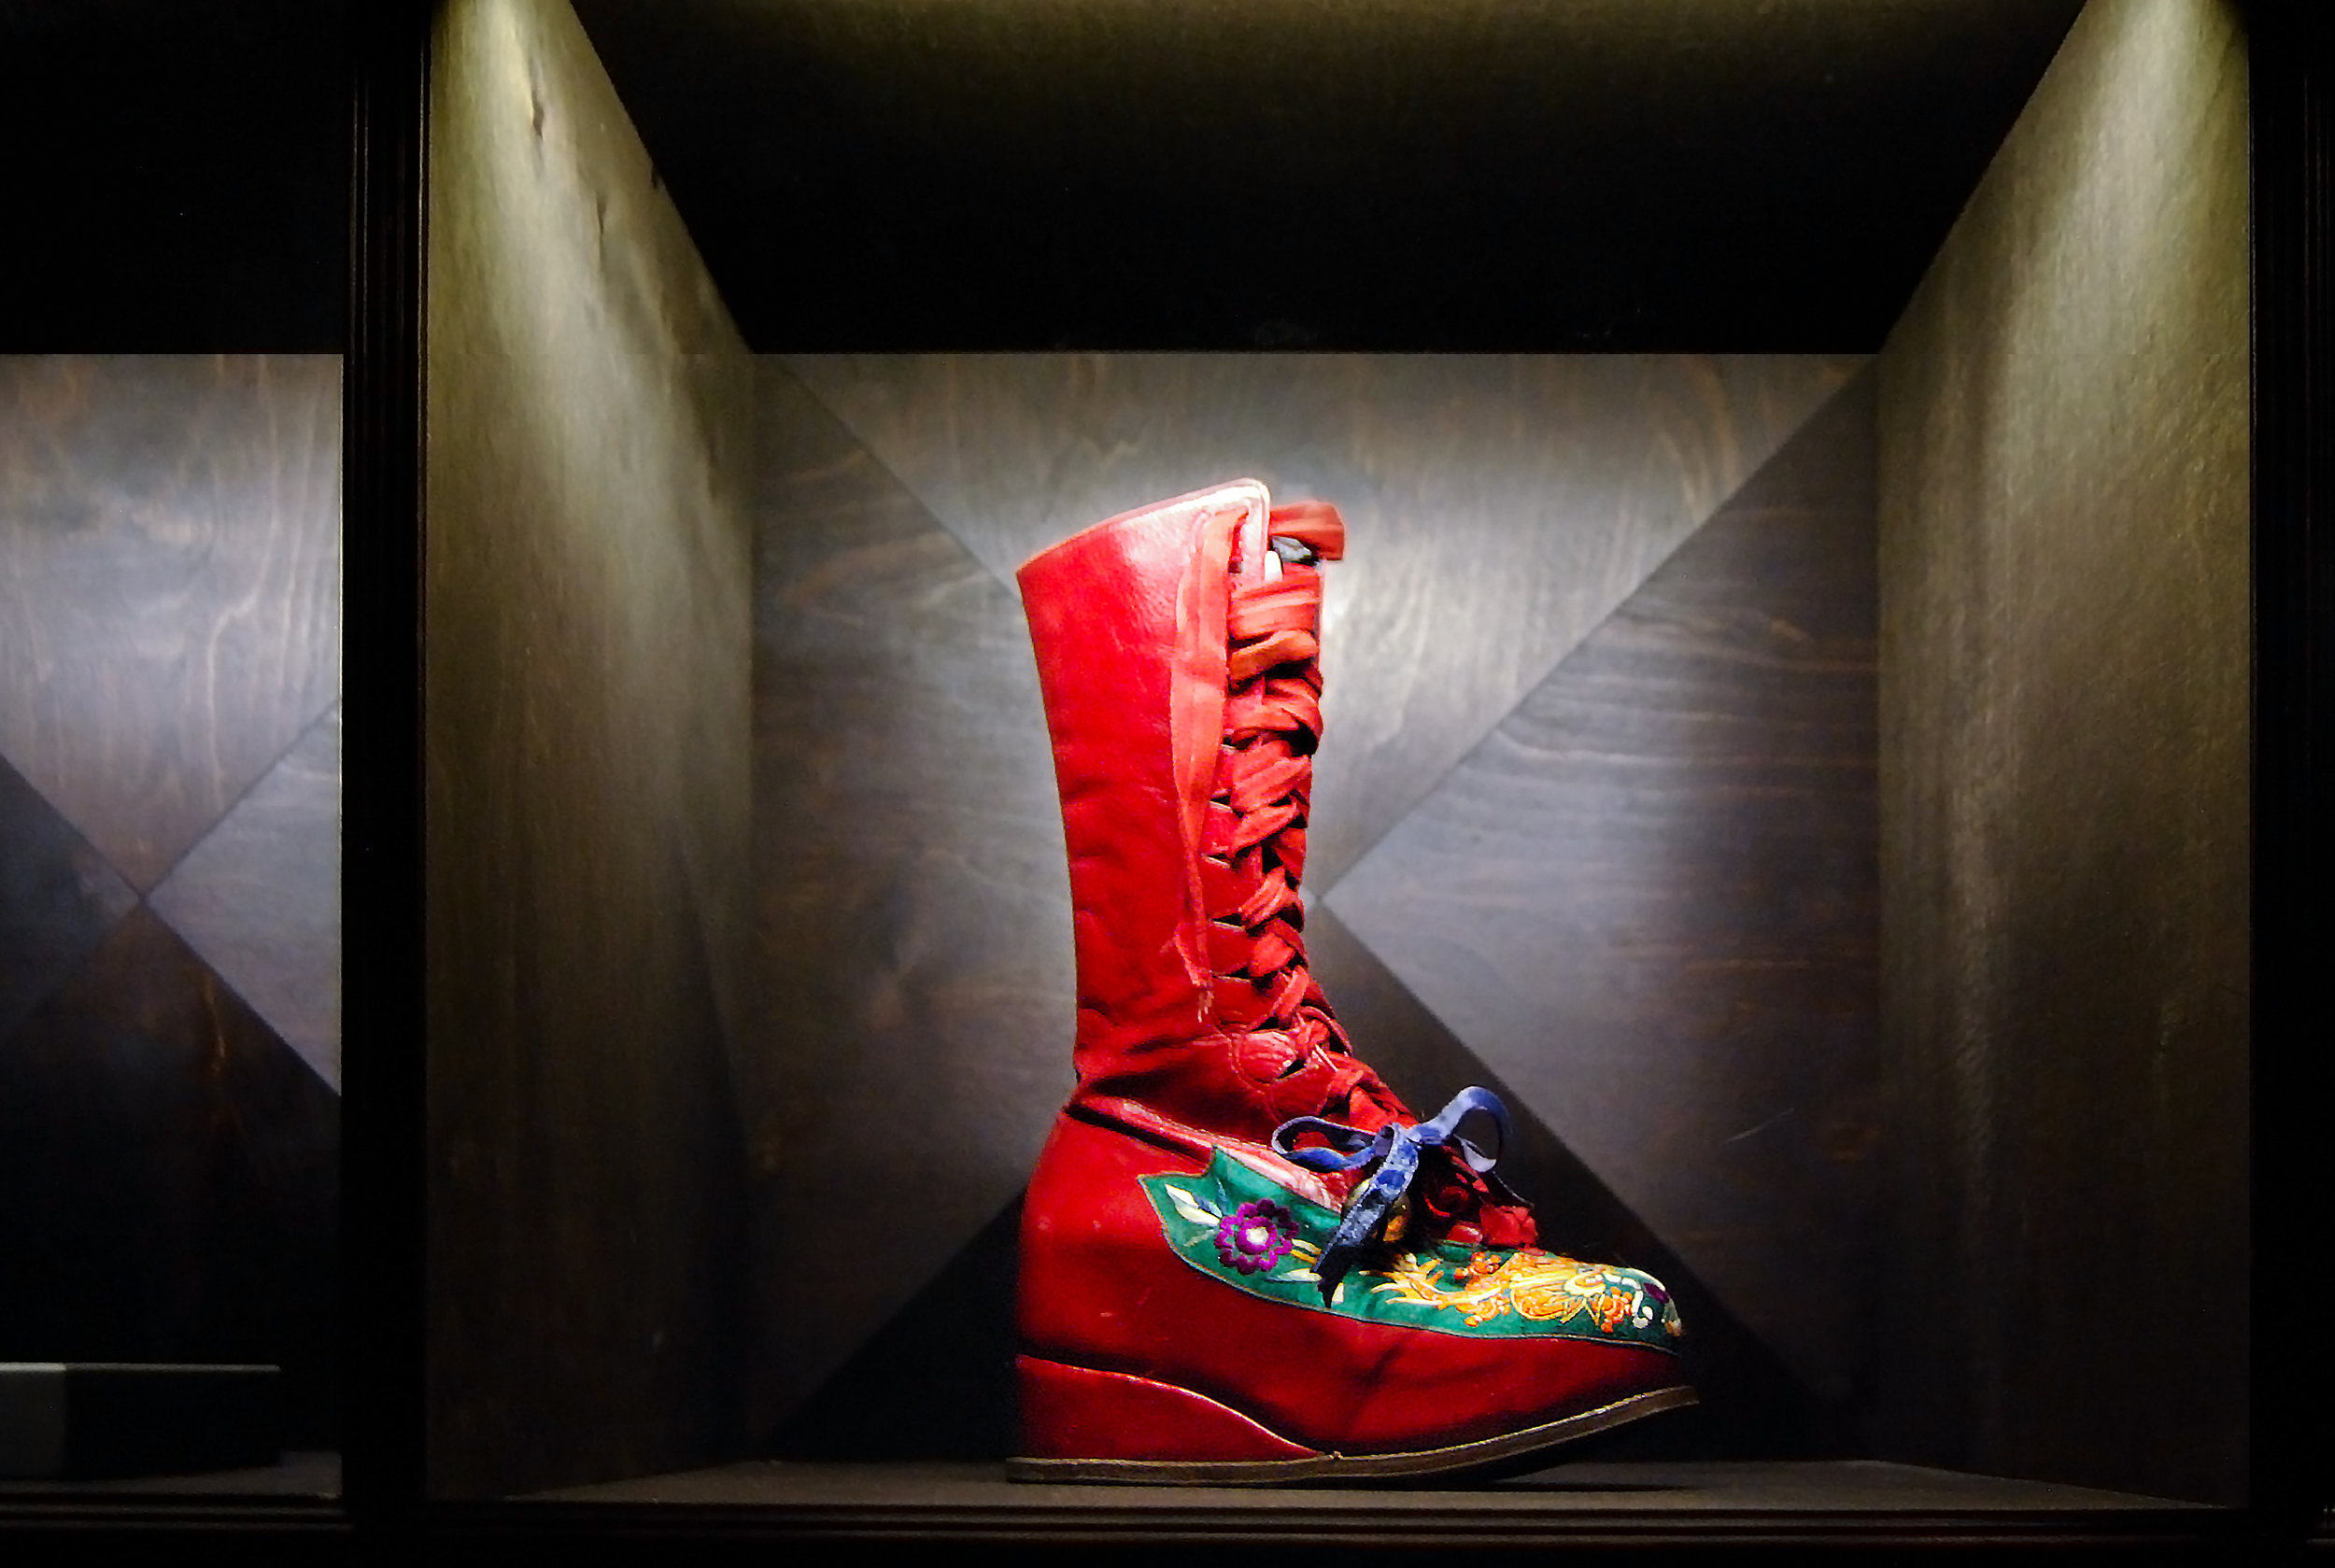 BACKGROUND PHOTO: Frida Kahlo's ornate red boot,which was once attached to her prosthetic right leg,on exhibit at  Museo Frida Kahlo . Photo © 2018  Arturo Veloira